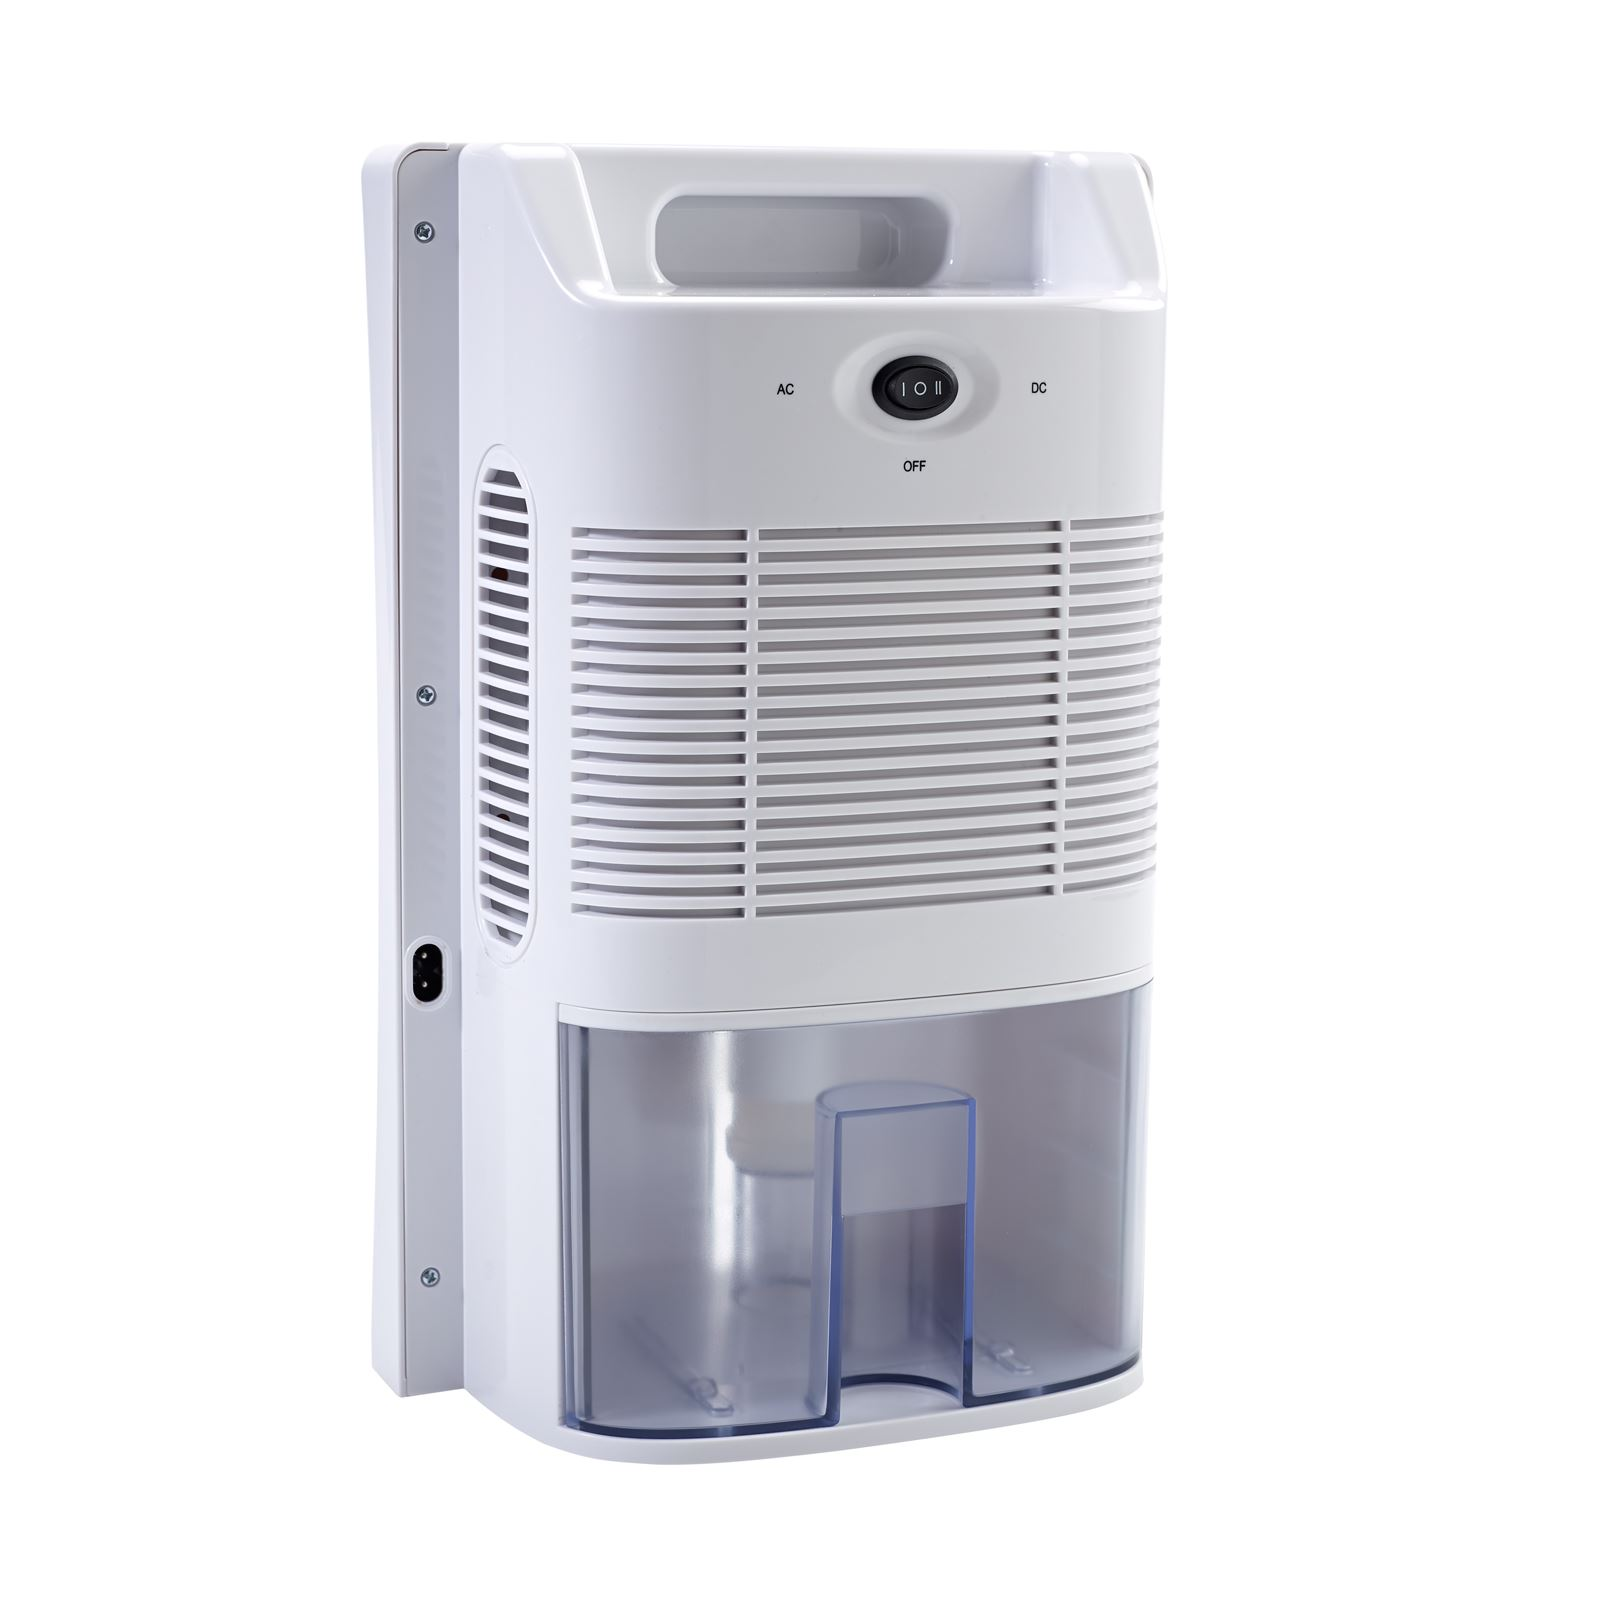 Portable Air Dehumidifiers Household Car Wardrobe Kitchen Bedroom Bathroom Damp Ebay